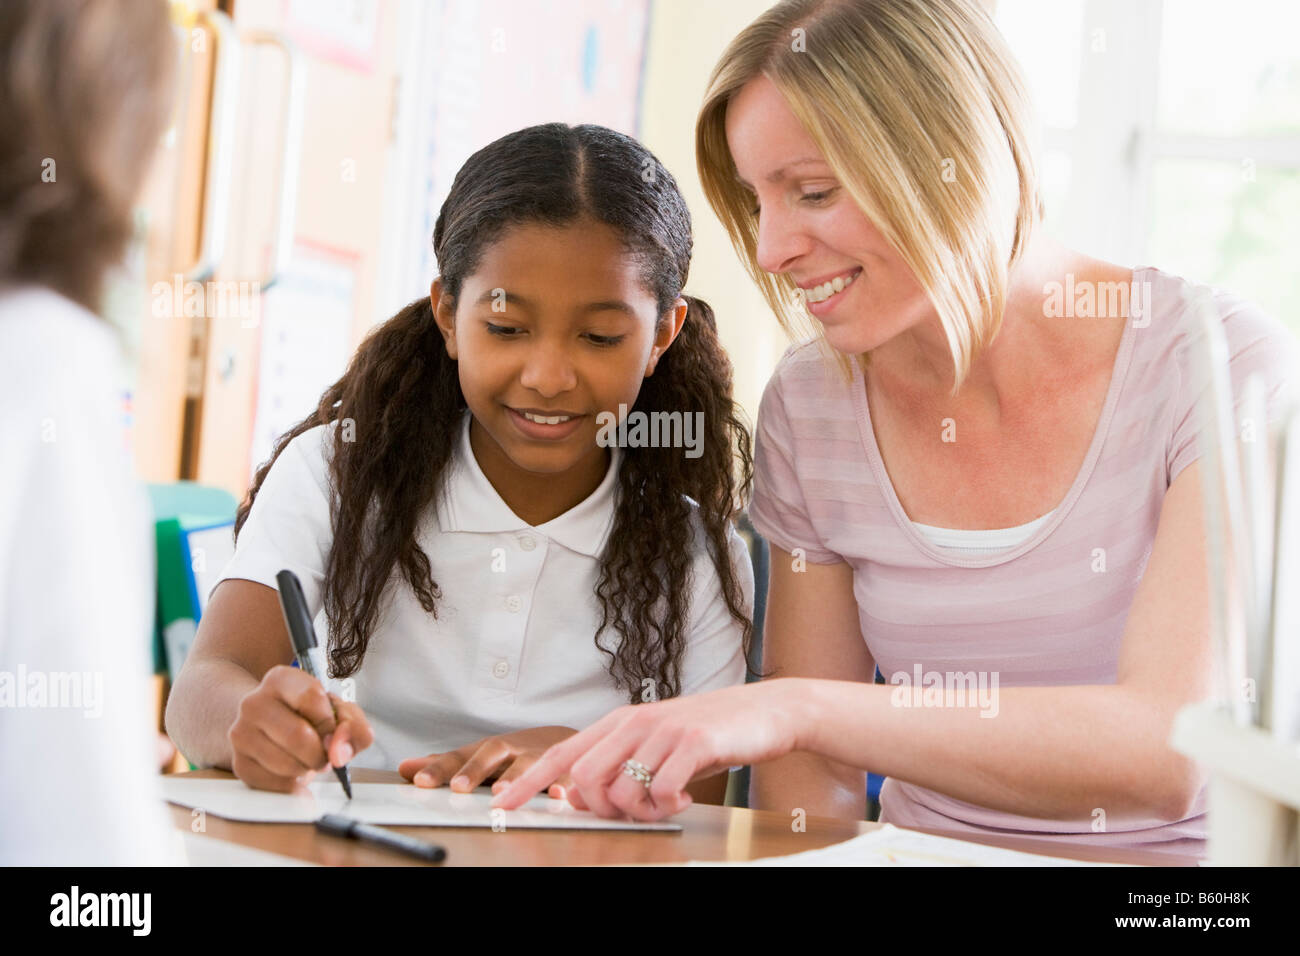 Student in class taking notes with teacher helping - Stock Image